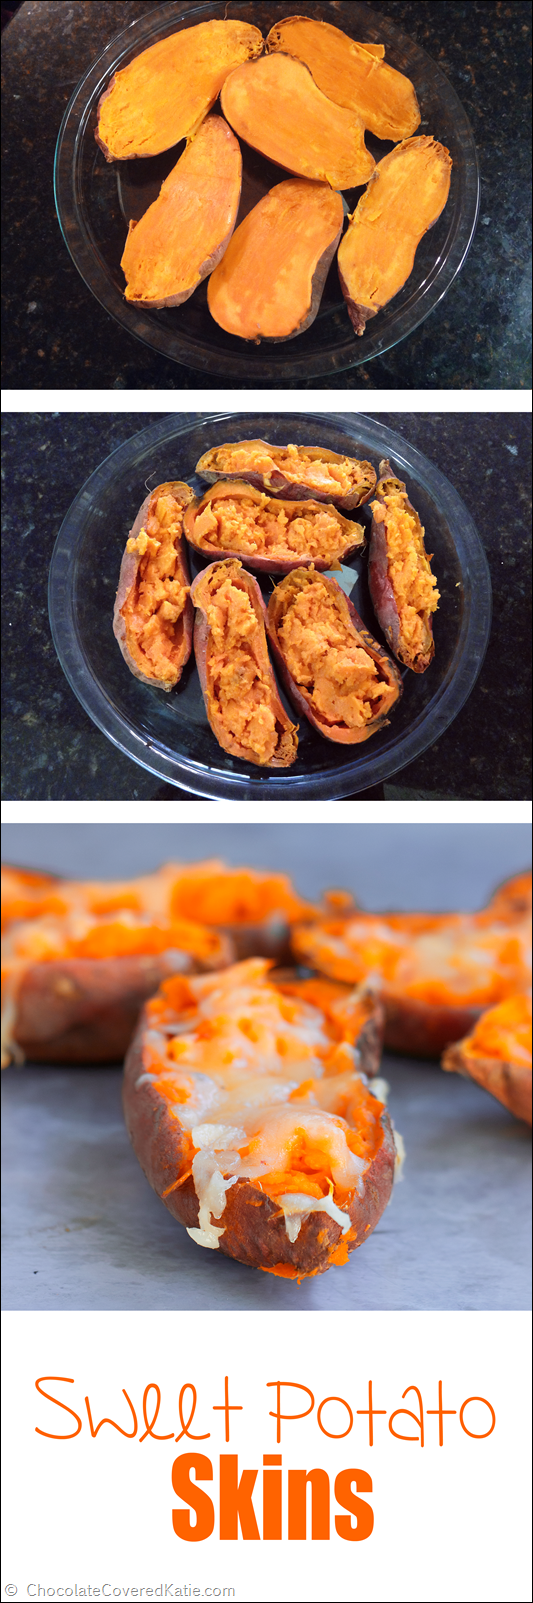 Irresistibly cheesy, addictively crispy, and secretly healthy, they are the perfect comfort food party appetizer. Really easy and quick to make: https://chocolatecoveredkatie.com/2015/01/22/loaded-baked-sweet-potato-skins/